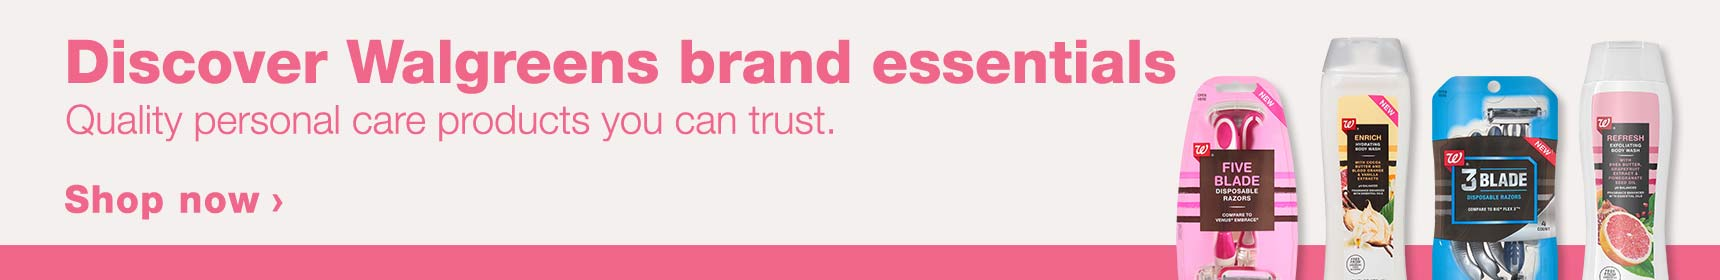 Discover Walgreens brand essentials. Quality personal care products you can trust. Shop now.